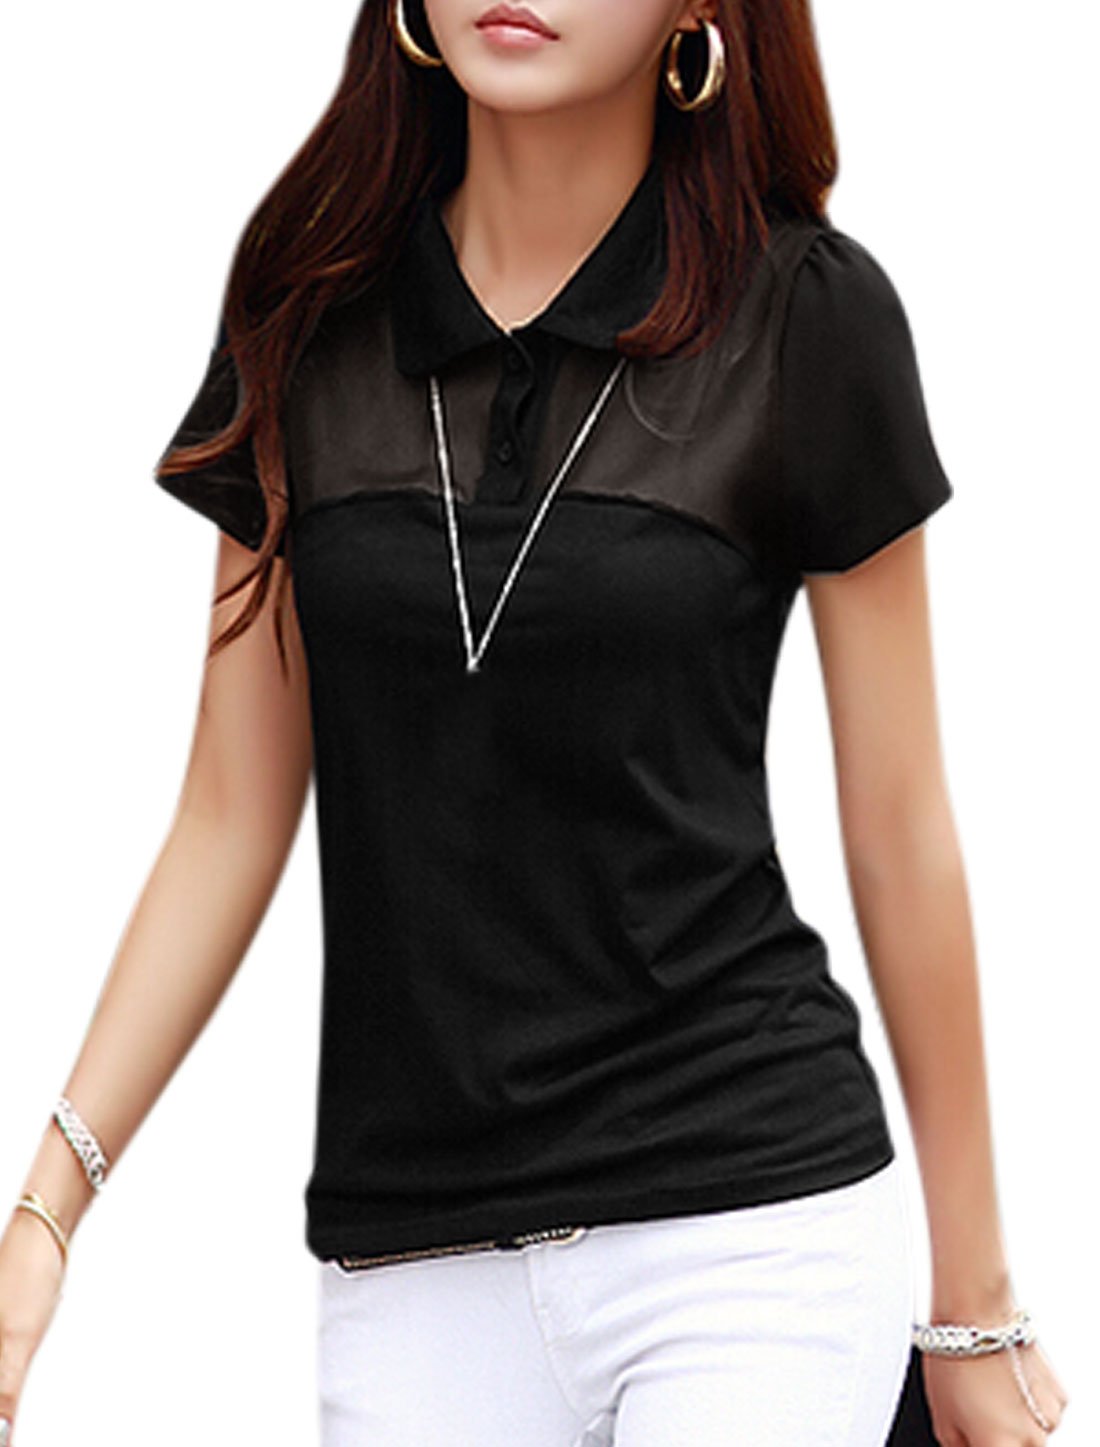 Women Short Sleeves Panel Design Semi Sheer Yoke T-Shirts Black XS